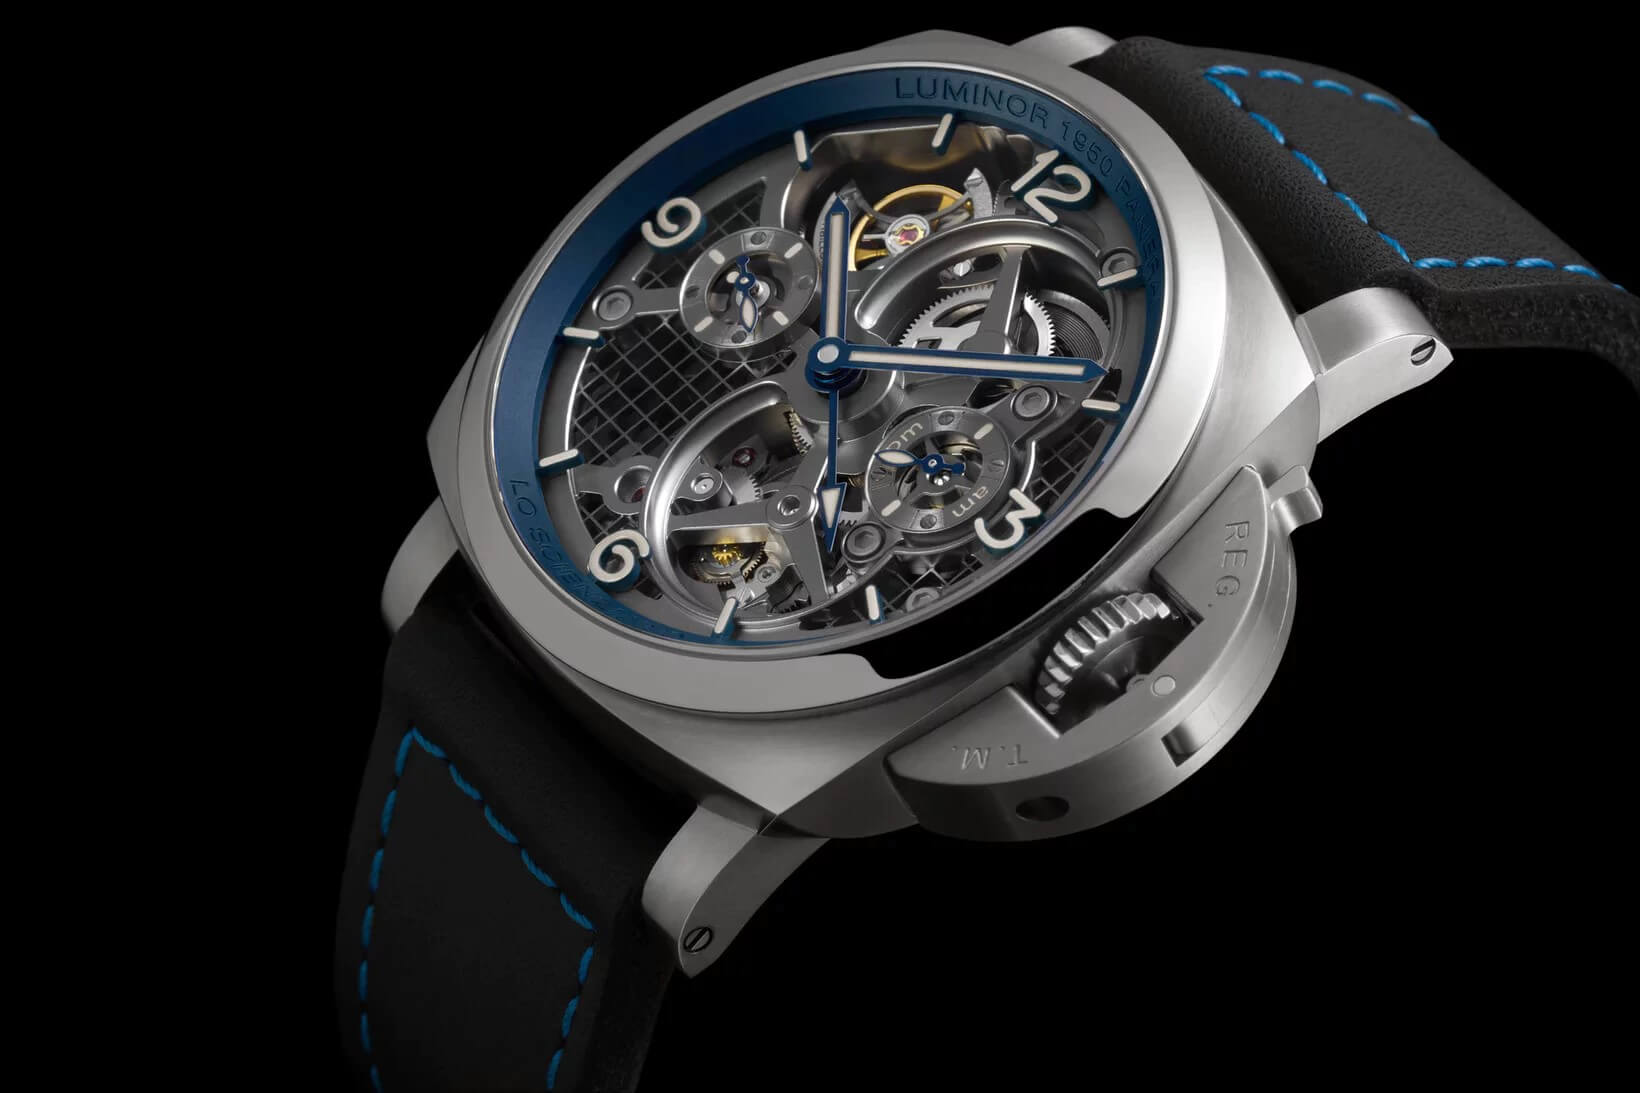 CREDIT: PANERAI LO SCIENZIATO LUMINOR 1950 TOURBILLON GMT TITANIO